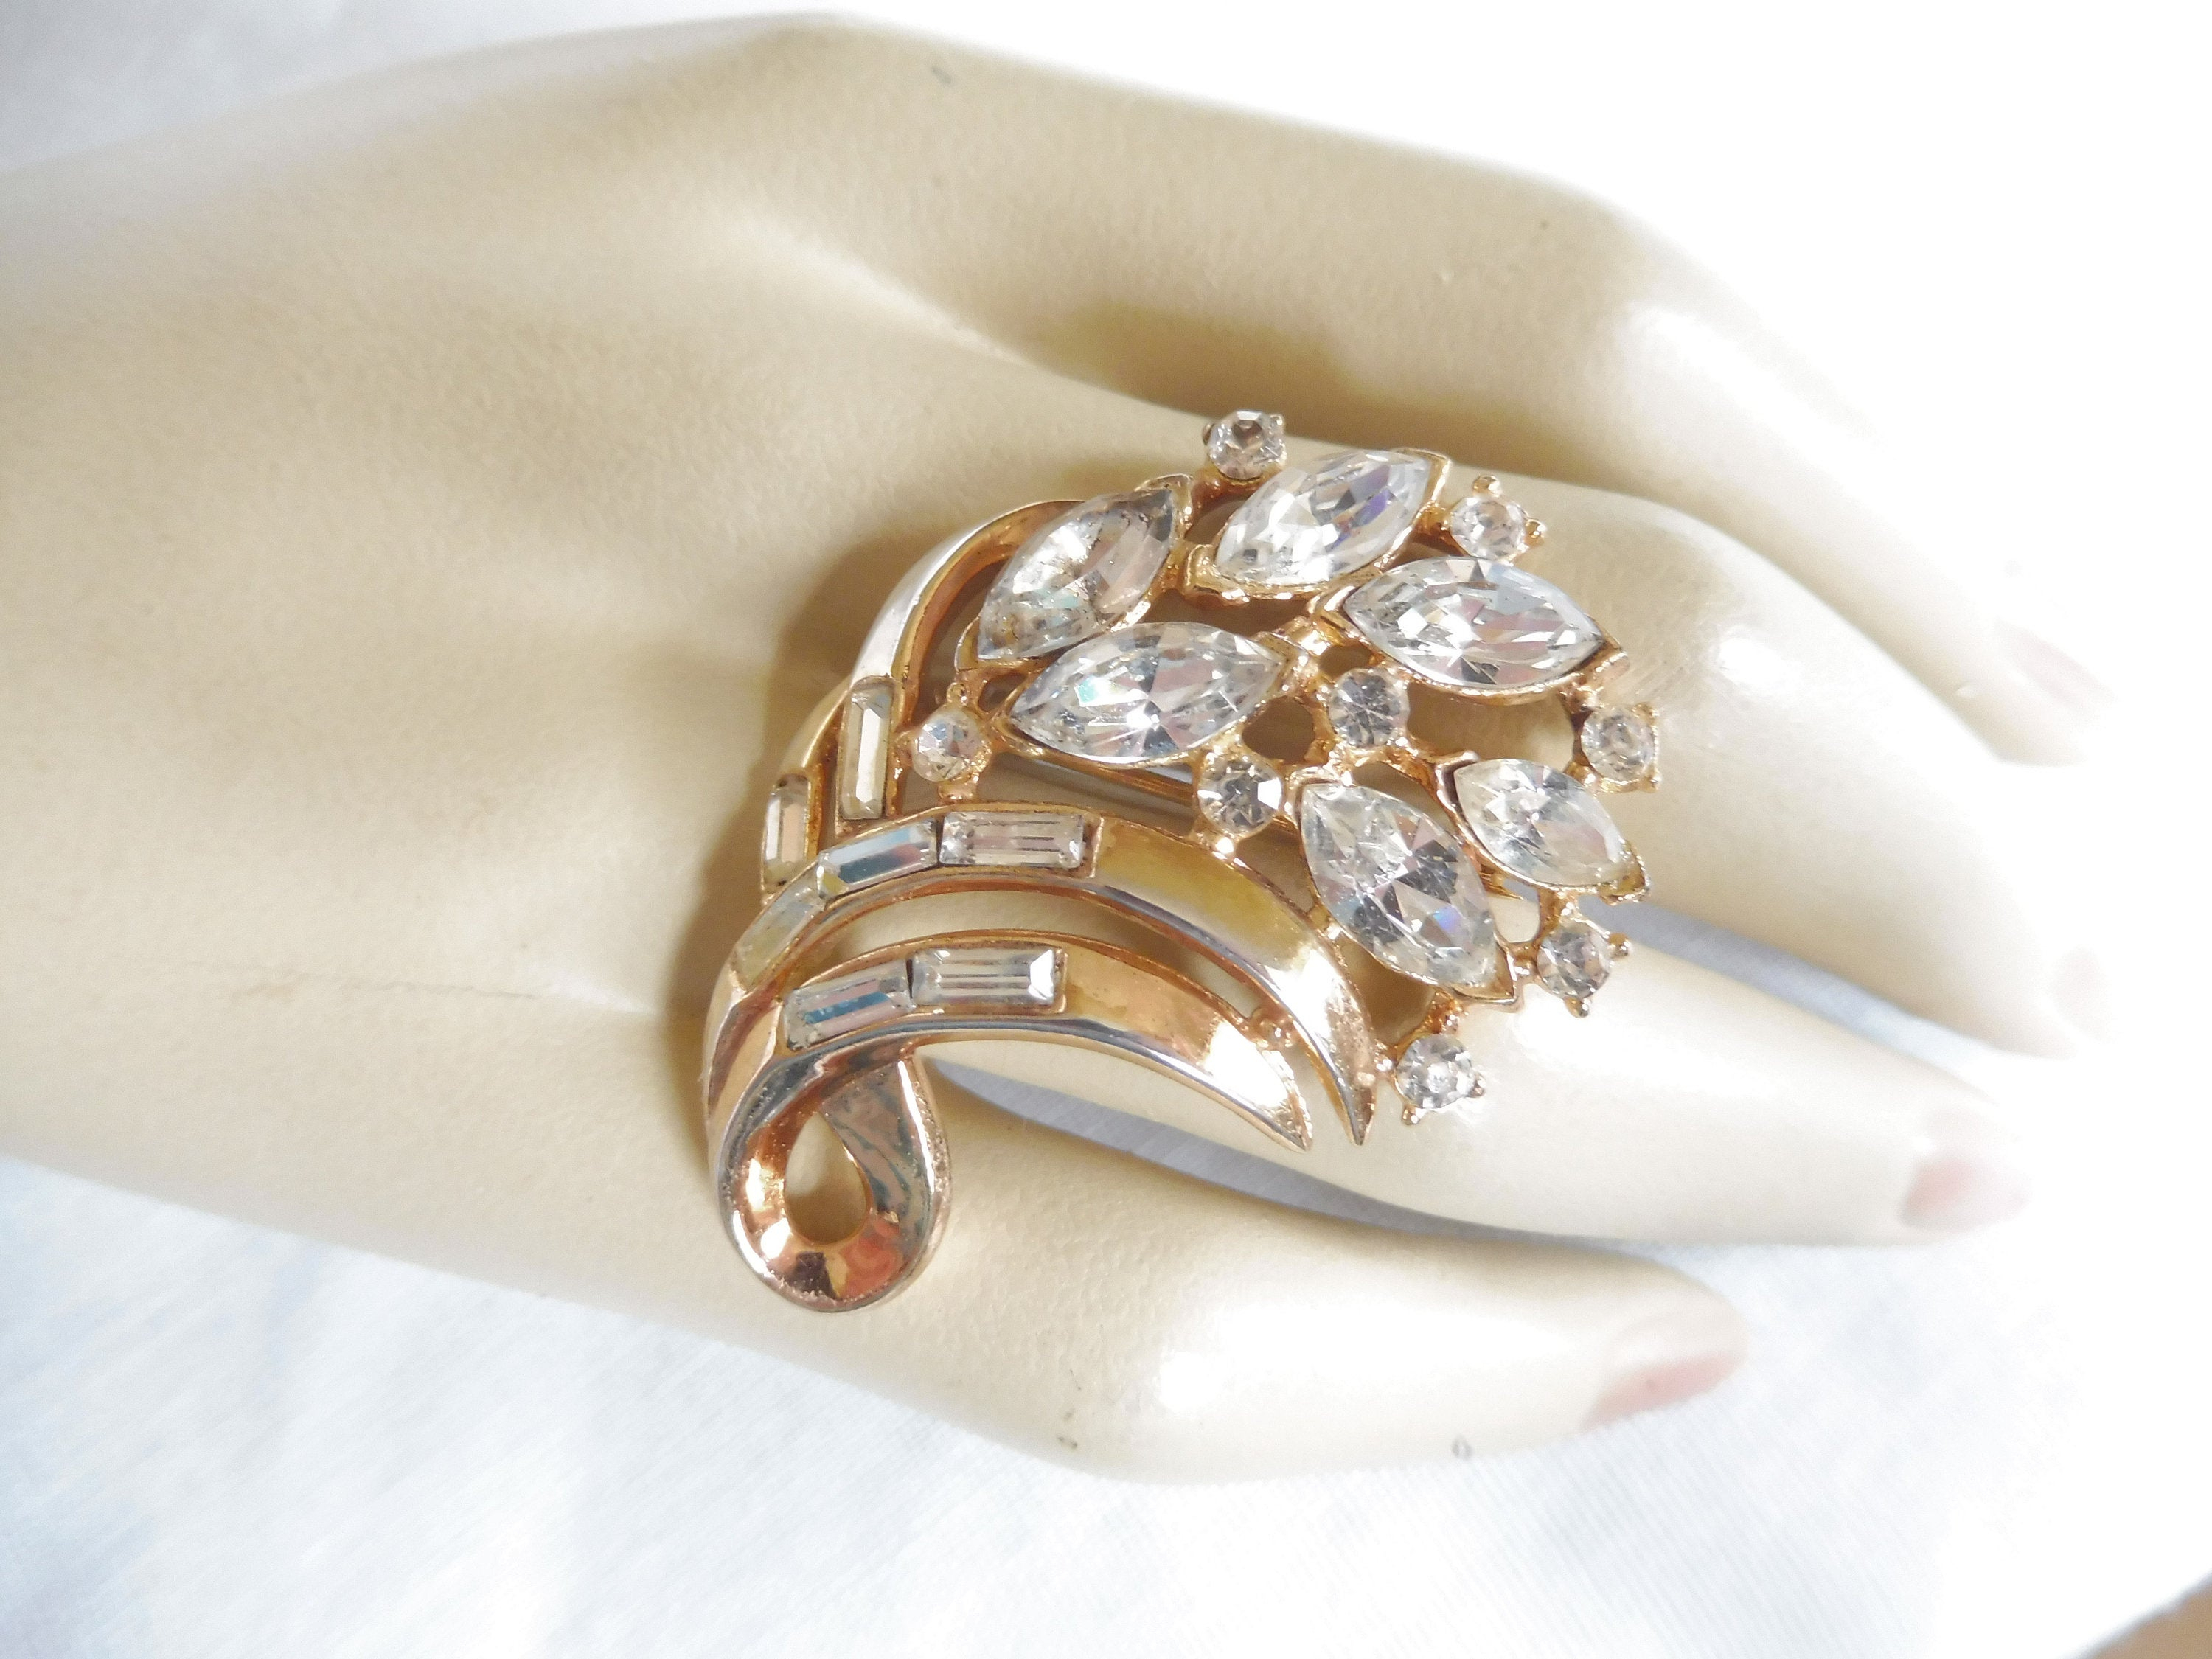 Vintage Crown Trifari Sparkling Clear Marquise Rhinestone Spray Brooch Pin Pertaining To Most Popular Clear Sparkling Crown Rings (View 16 of 25)